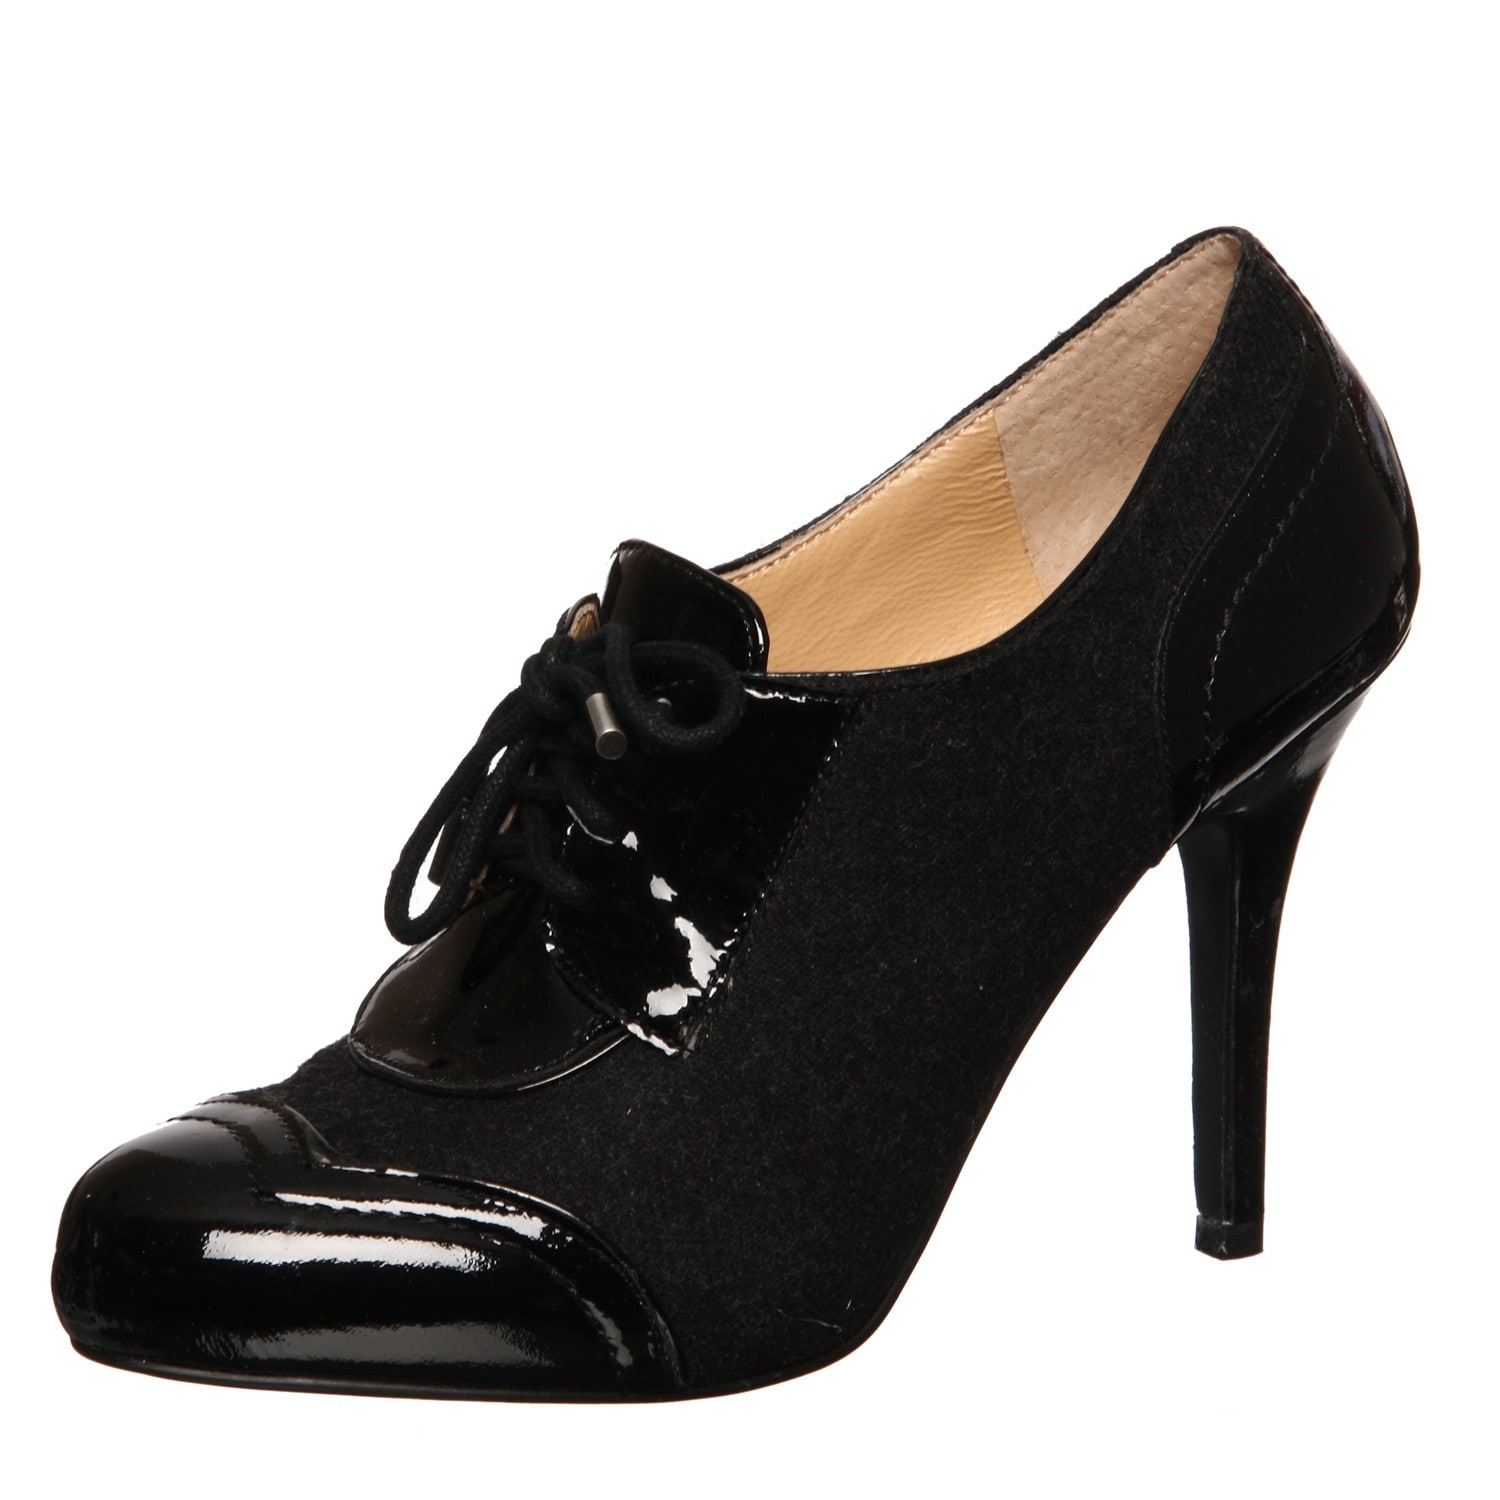 88a7b038cb0 Shop Circa Joan   David Women s  Evensen  Lace-up Oxford Heels - Free  Shipping On Orders Over  45 - Overstock - 6384443